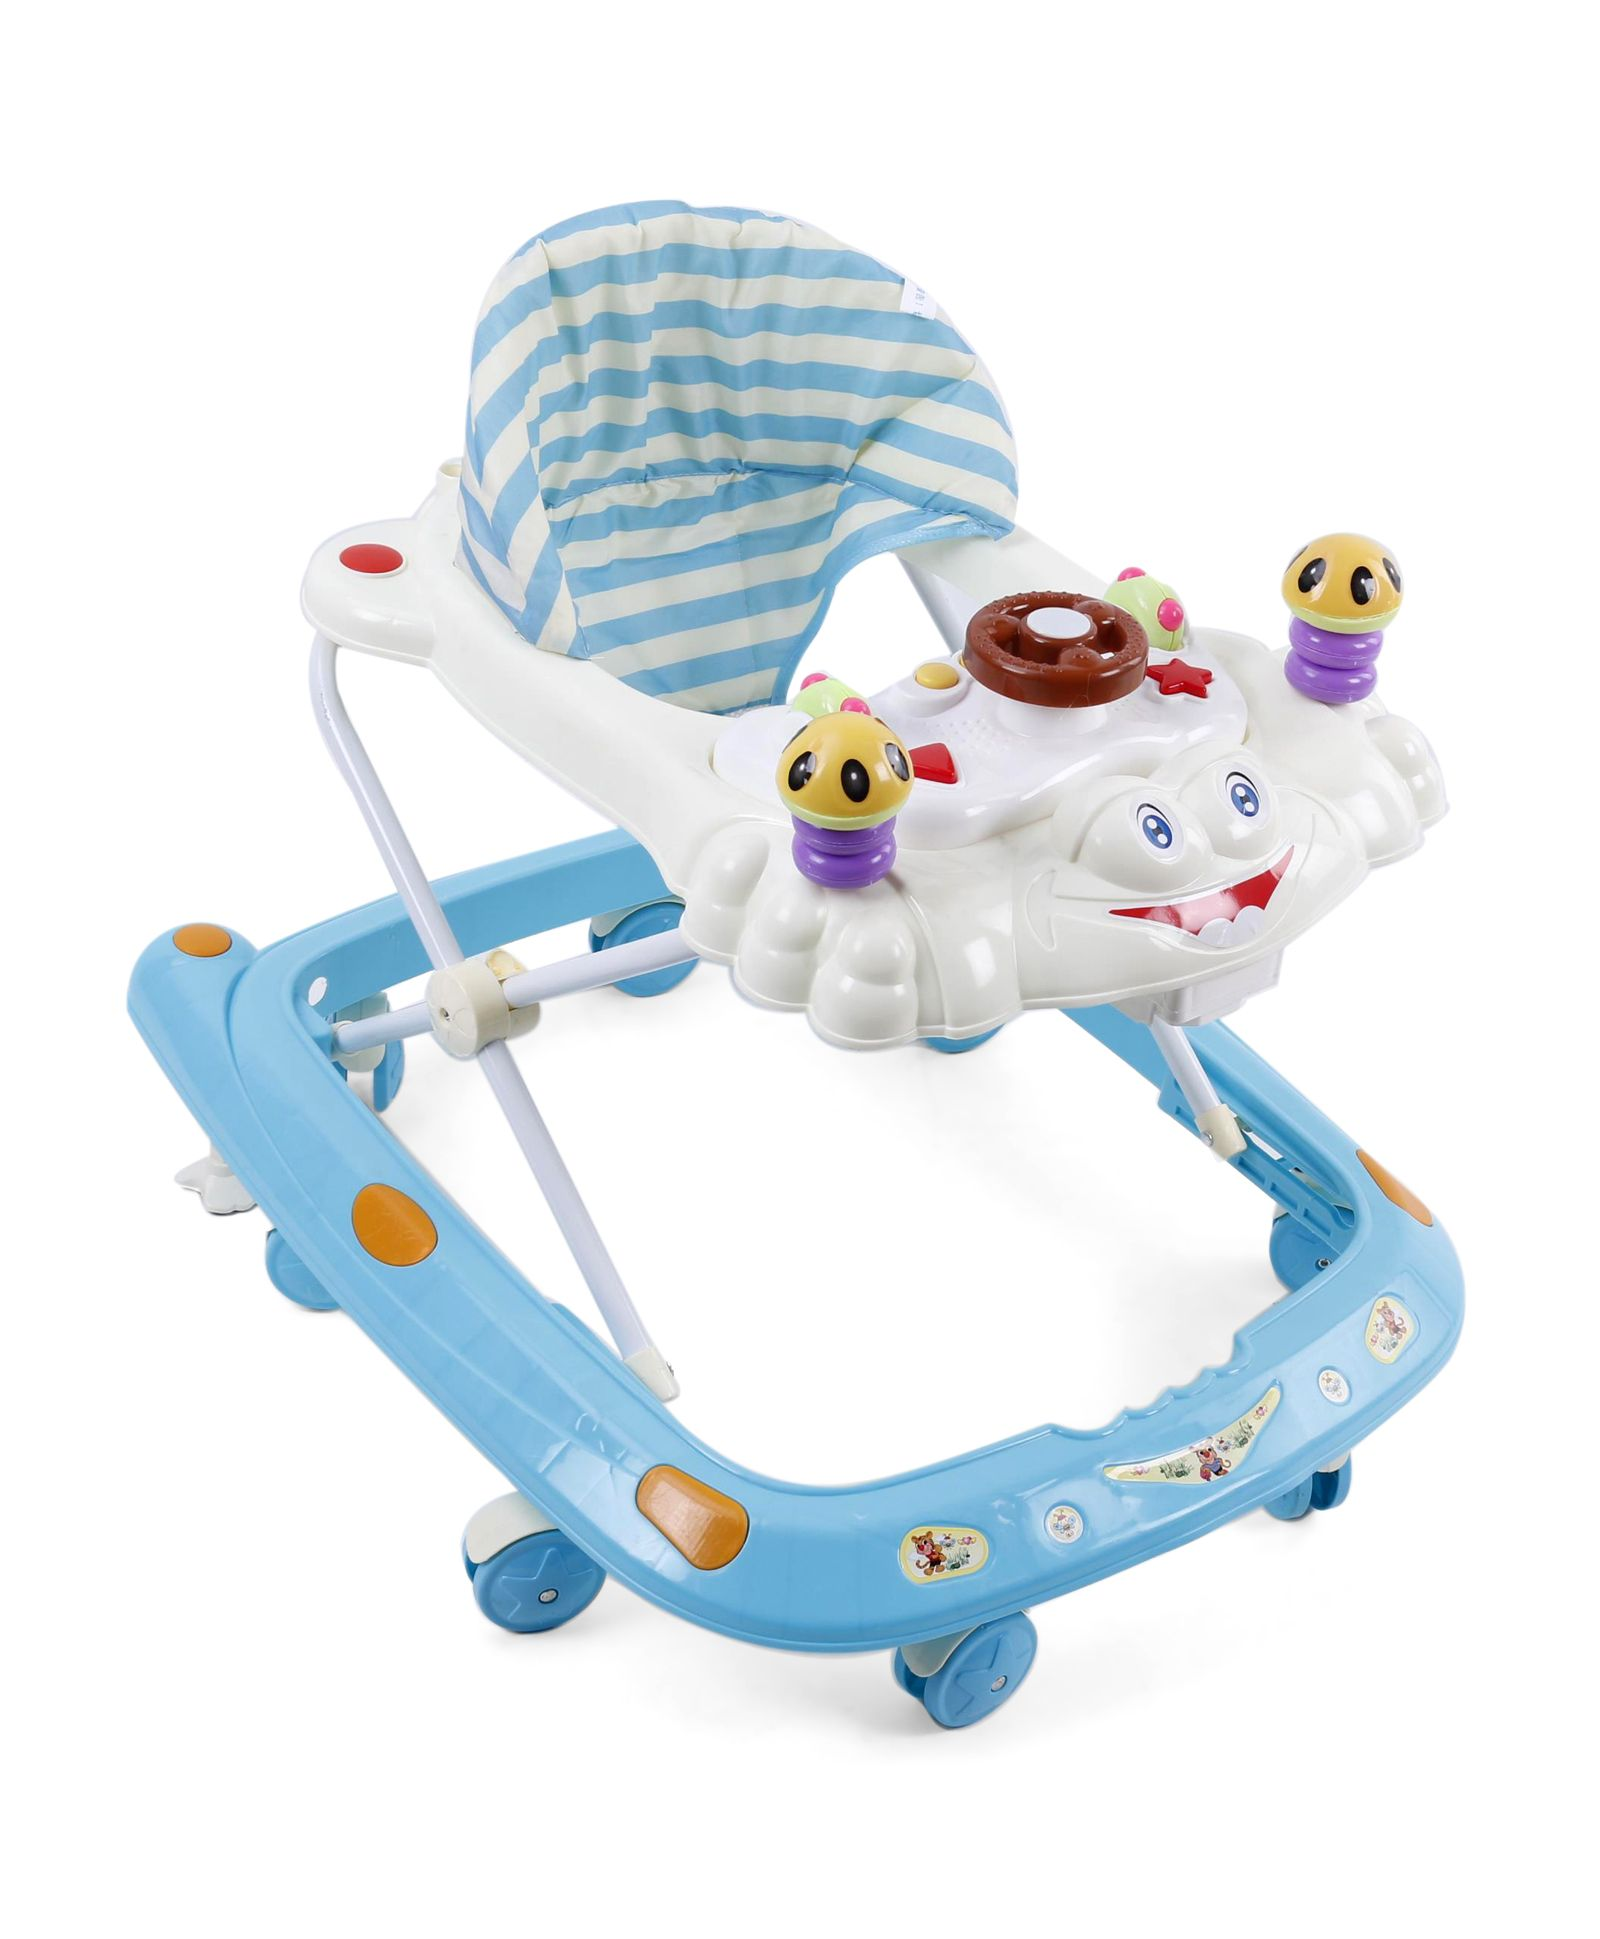 Baby Musical Walker With Cushioned Seat - Sky Blue Cream